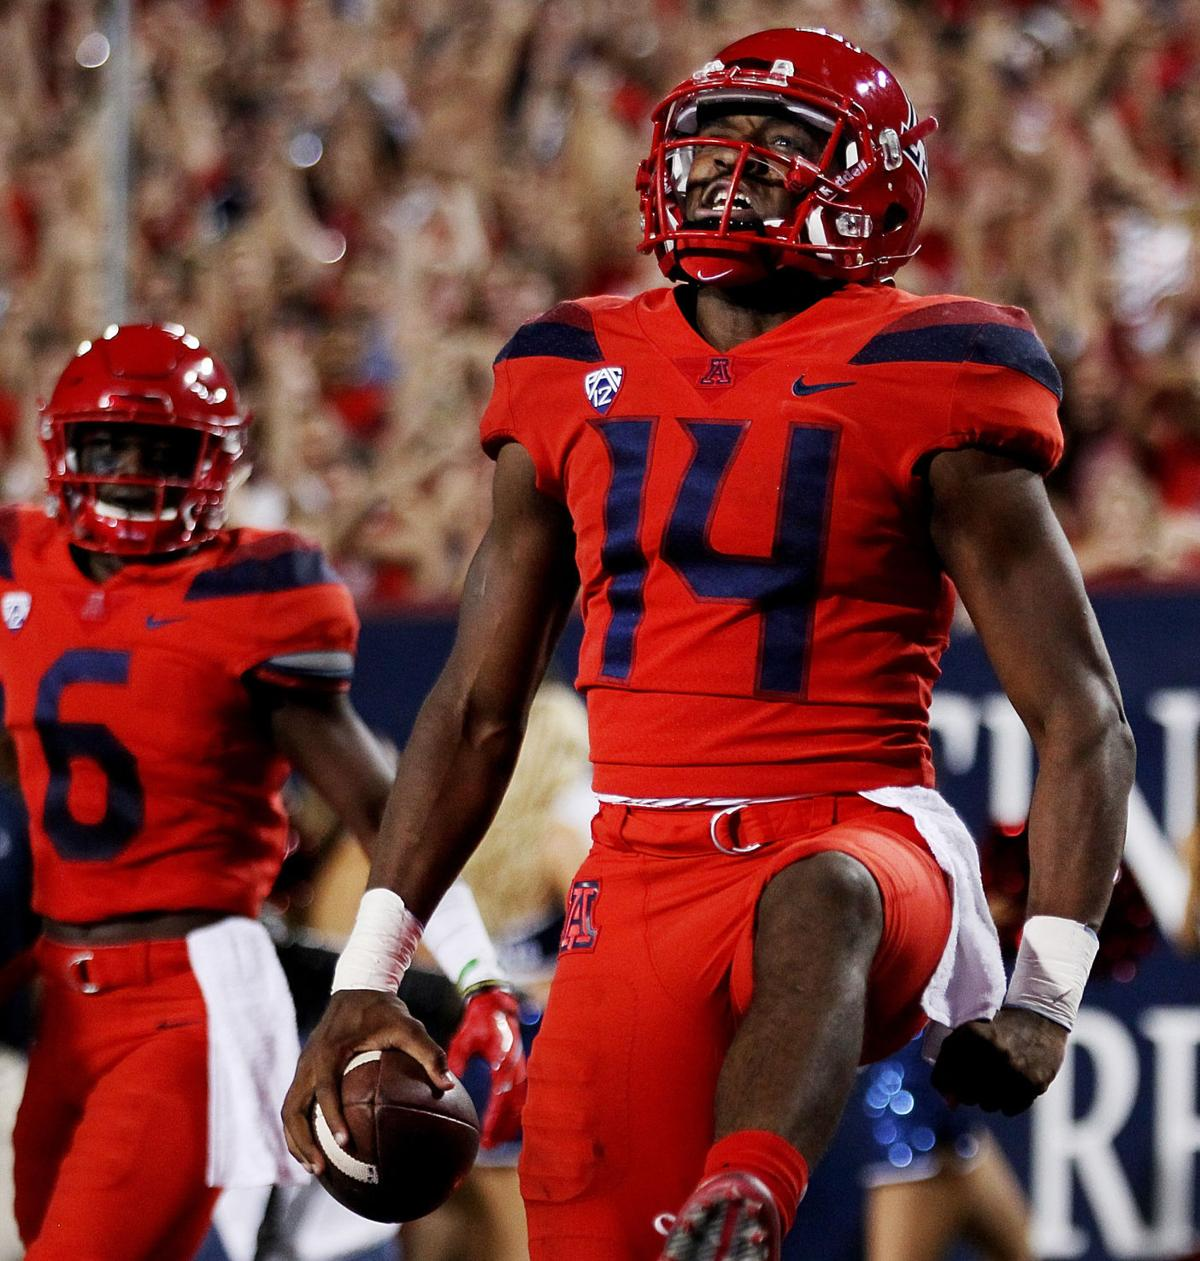 Virtual reality  Arizona Wildcats QB Khalil Tate has worked his way into  the Heisman Trophy conversation  c02561160